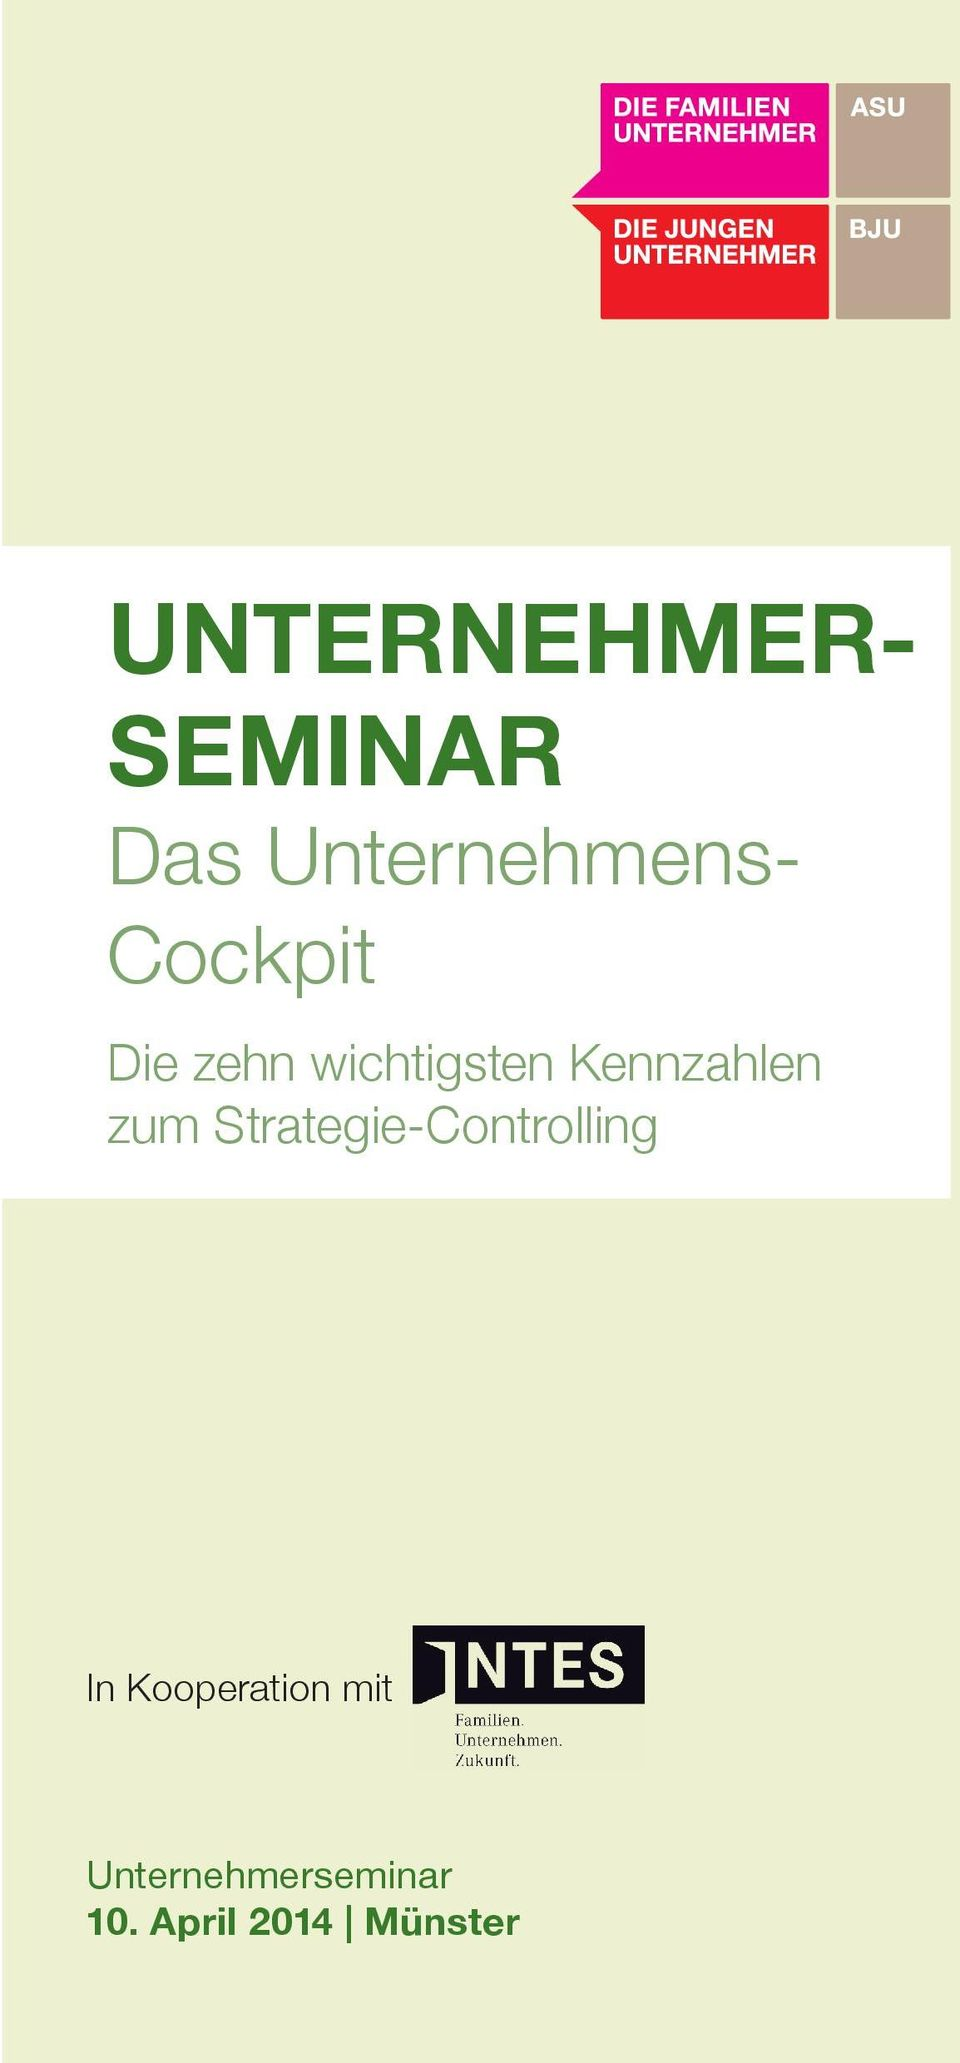 zum Strategie-Controlling In Kooperation